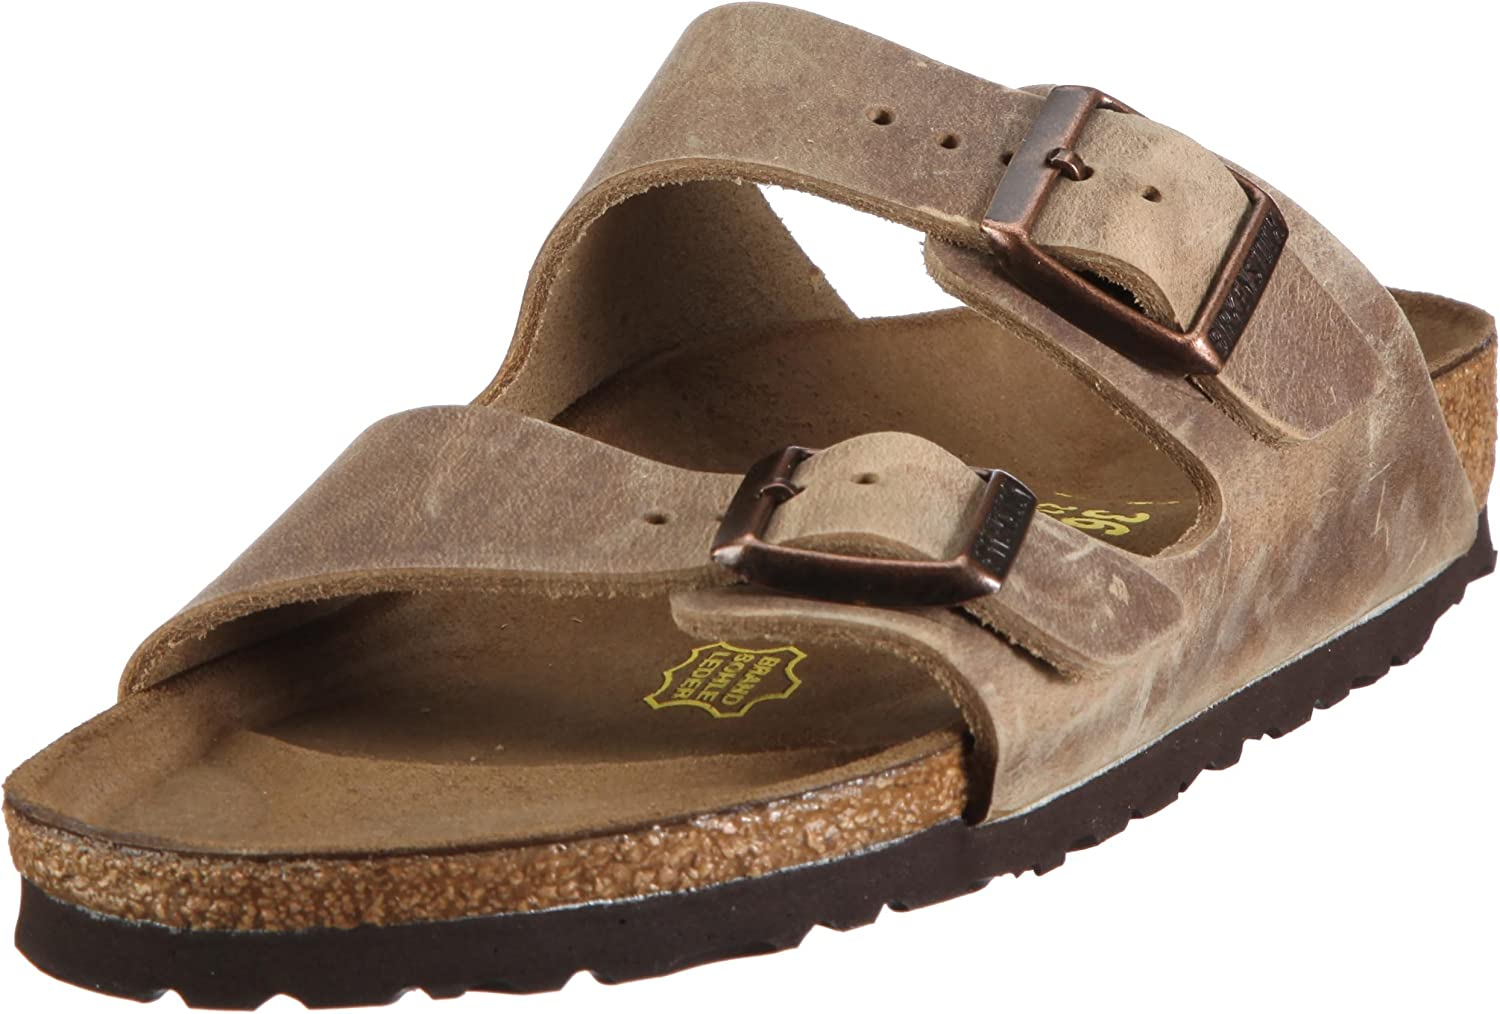 meet new lower prices release date: Amazon.com | Birkenstock Women's Arizona Oiled Leather Narrow Fit ...